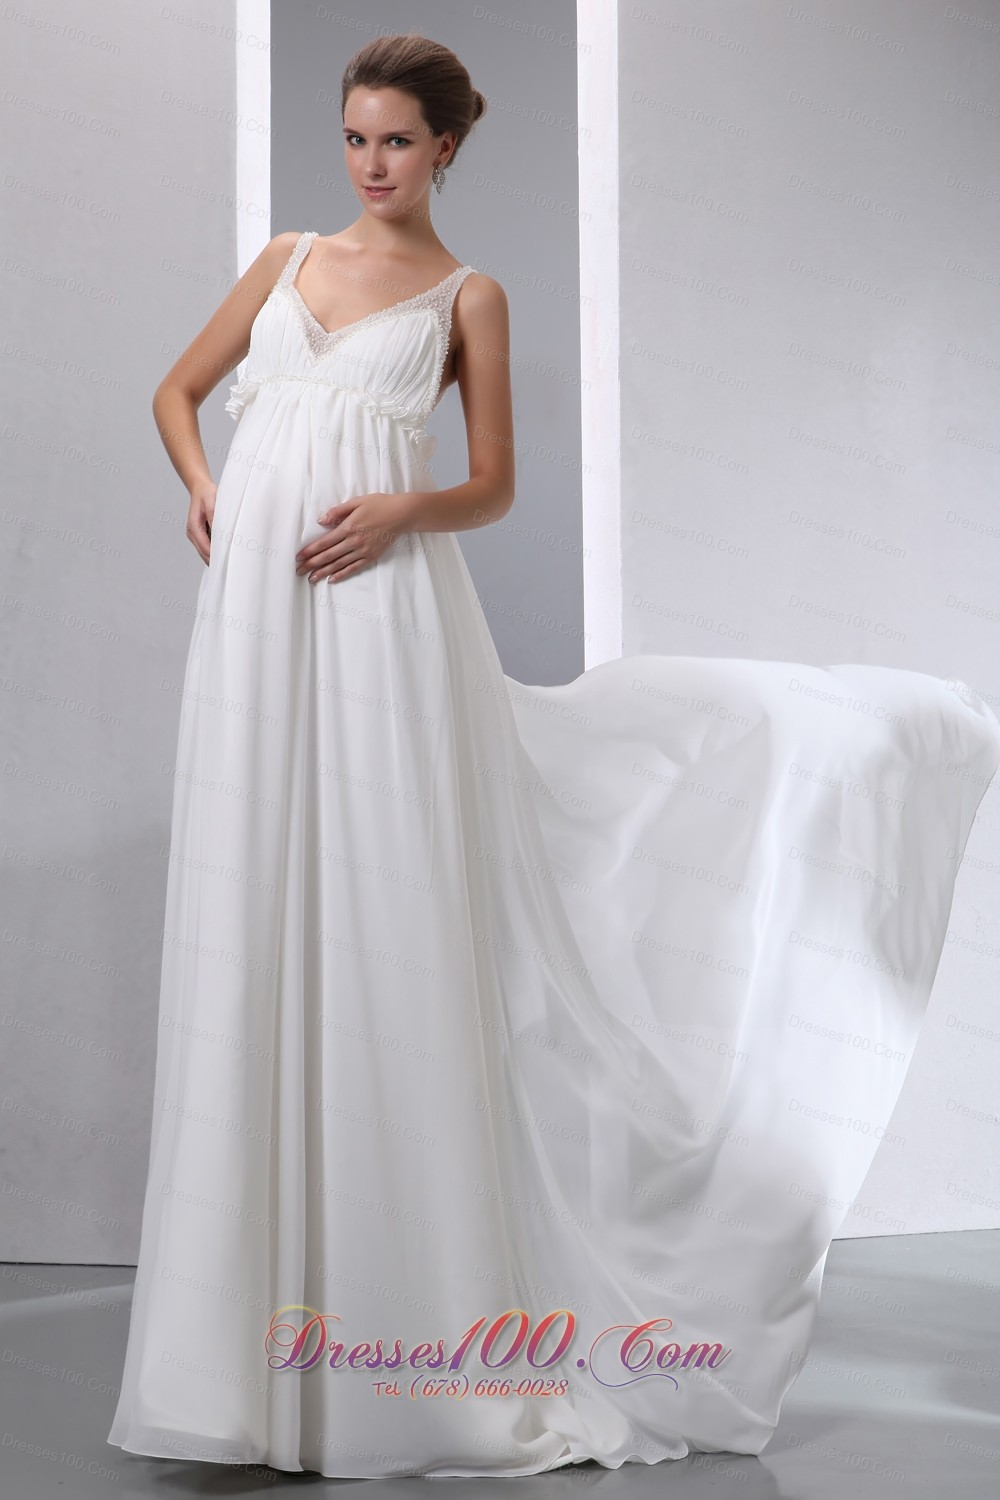 Simple Maternity Wedding Dresses - Gown And Dress Gallery